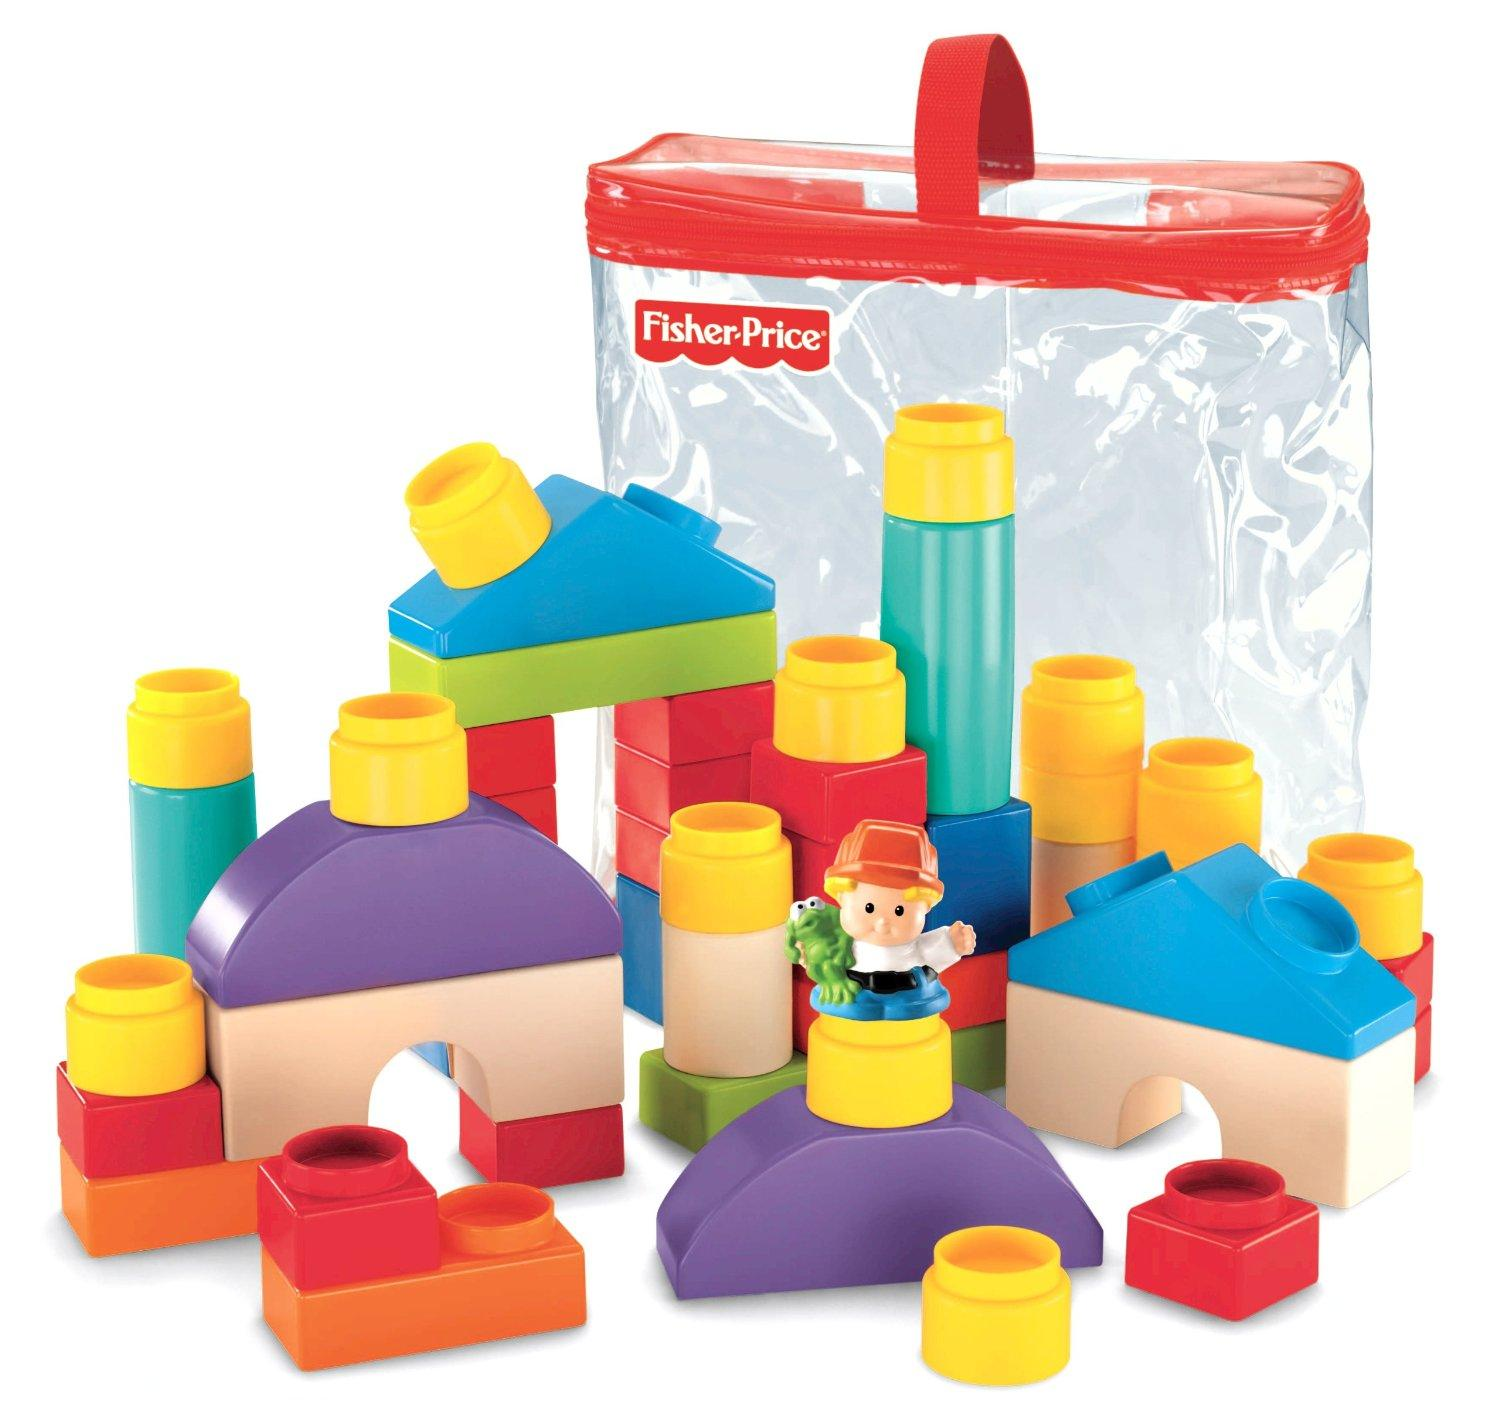 $9.99 Fisher-Price Little People Builders Classic Shapes Blocks